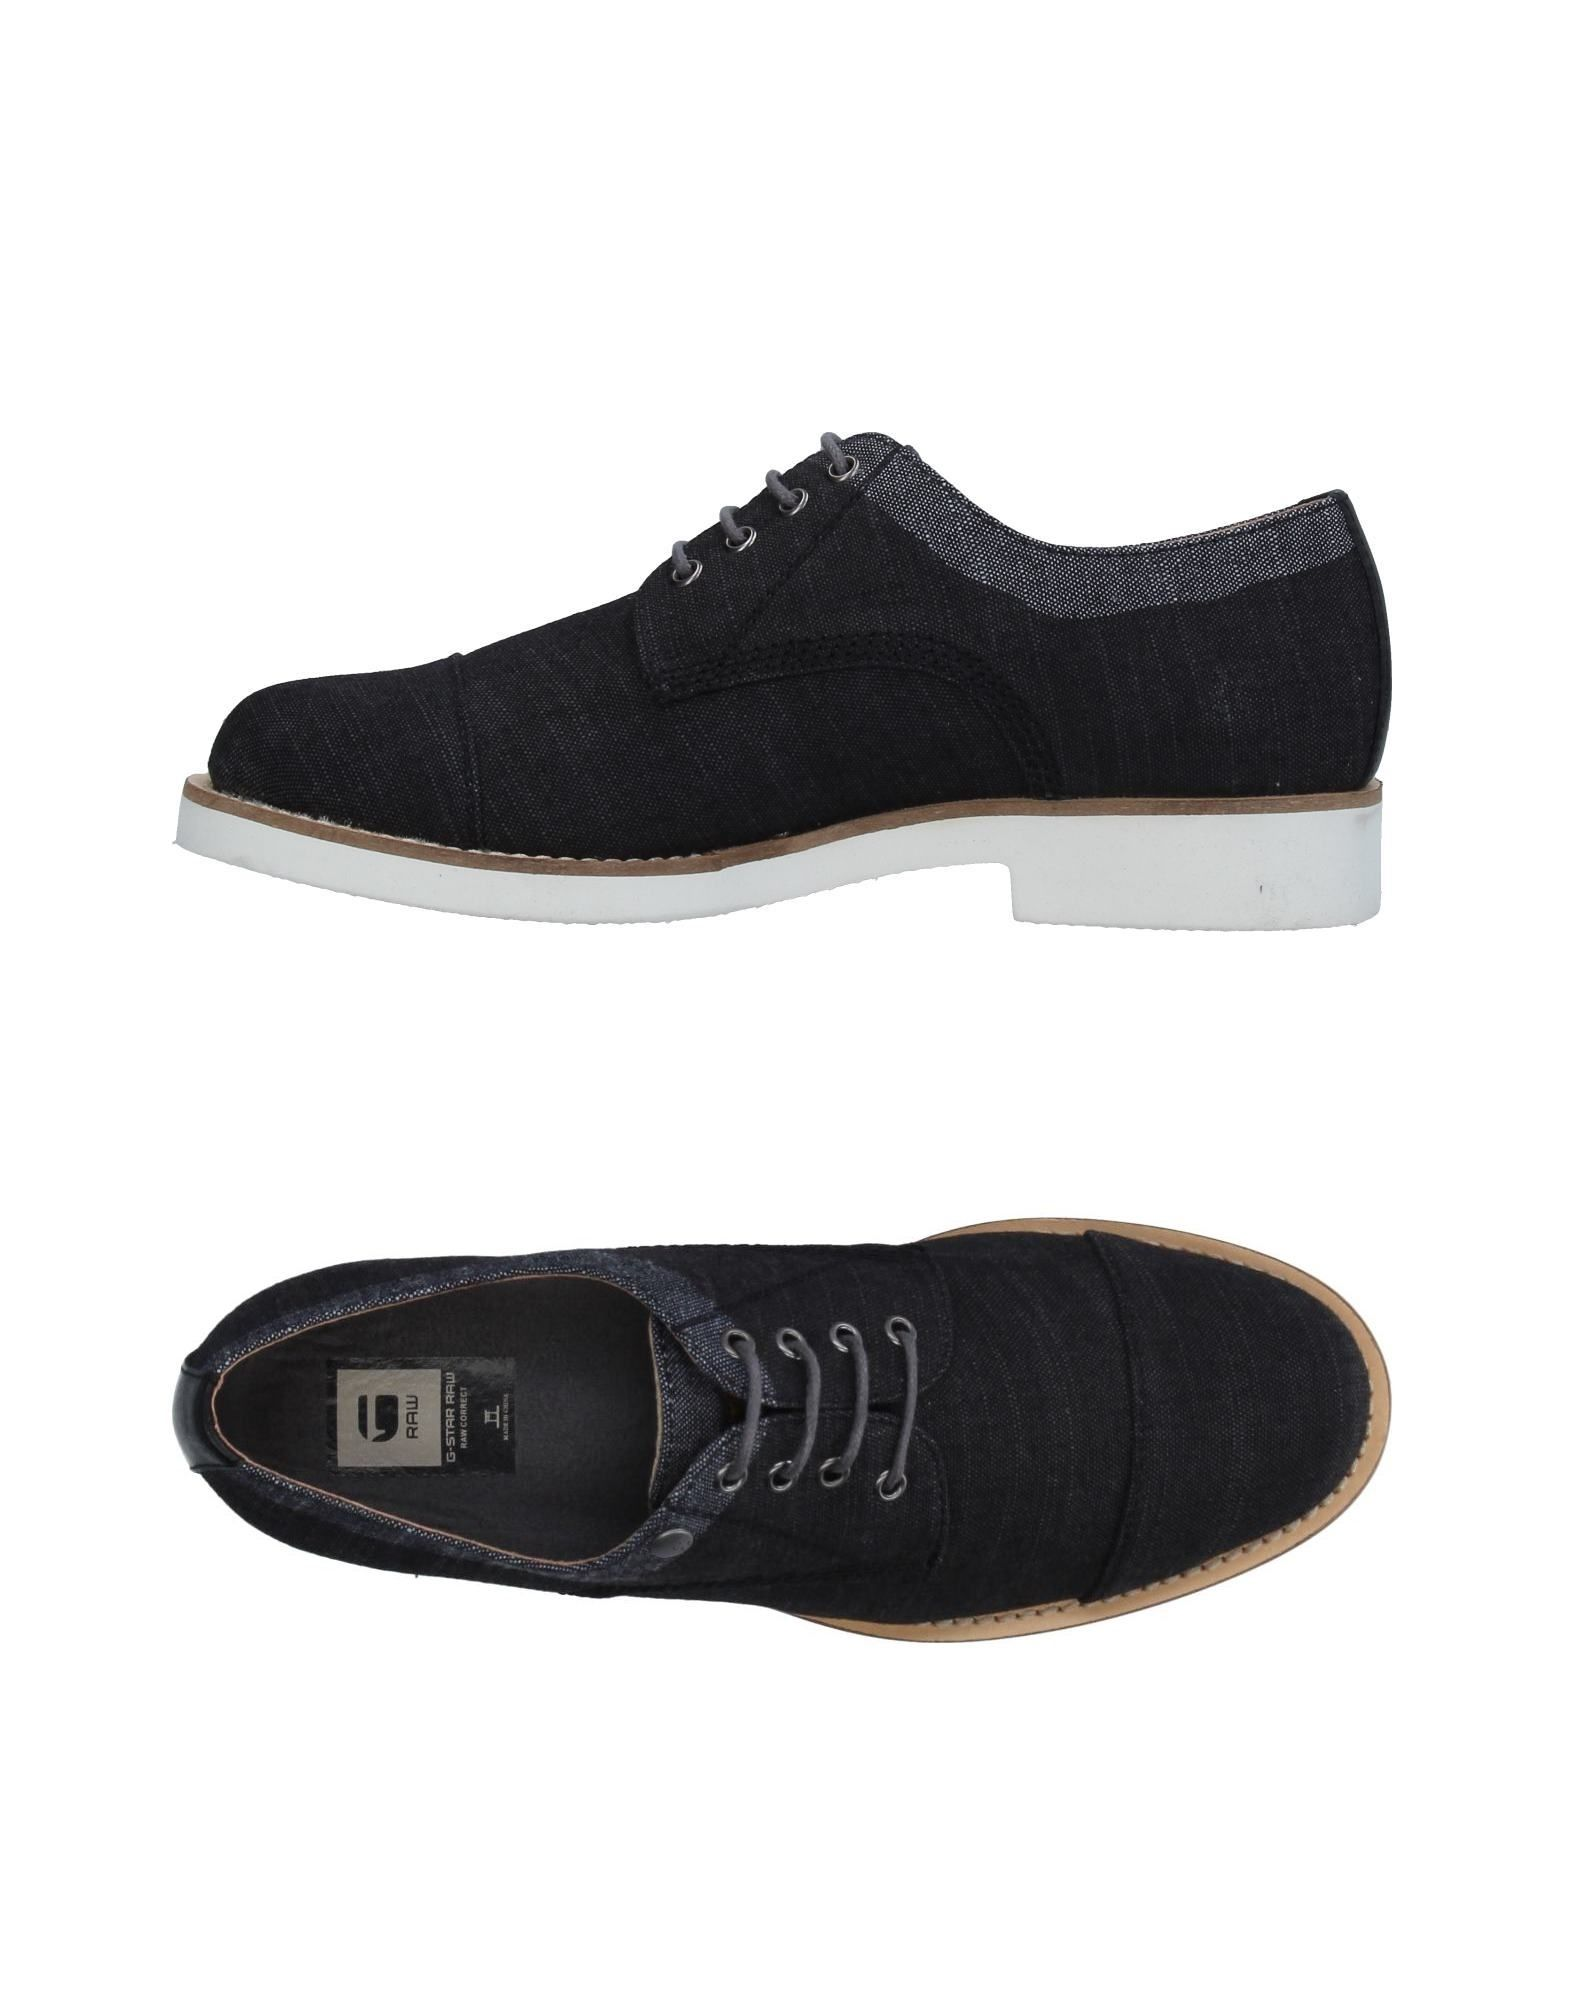 Chaussures À Lacets G-Star Raw Femme - Chaussures À Lacets G-Star Raw sur